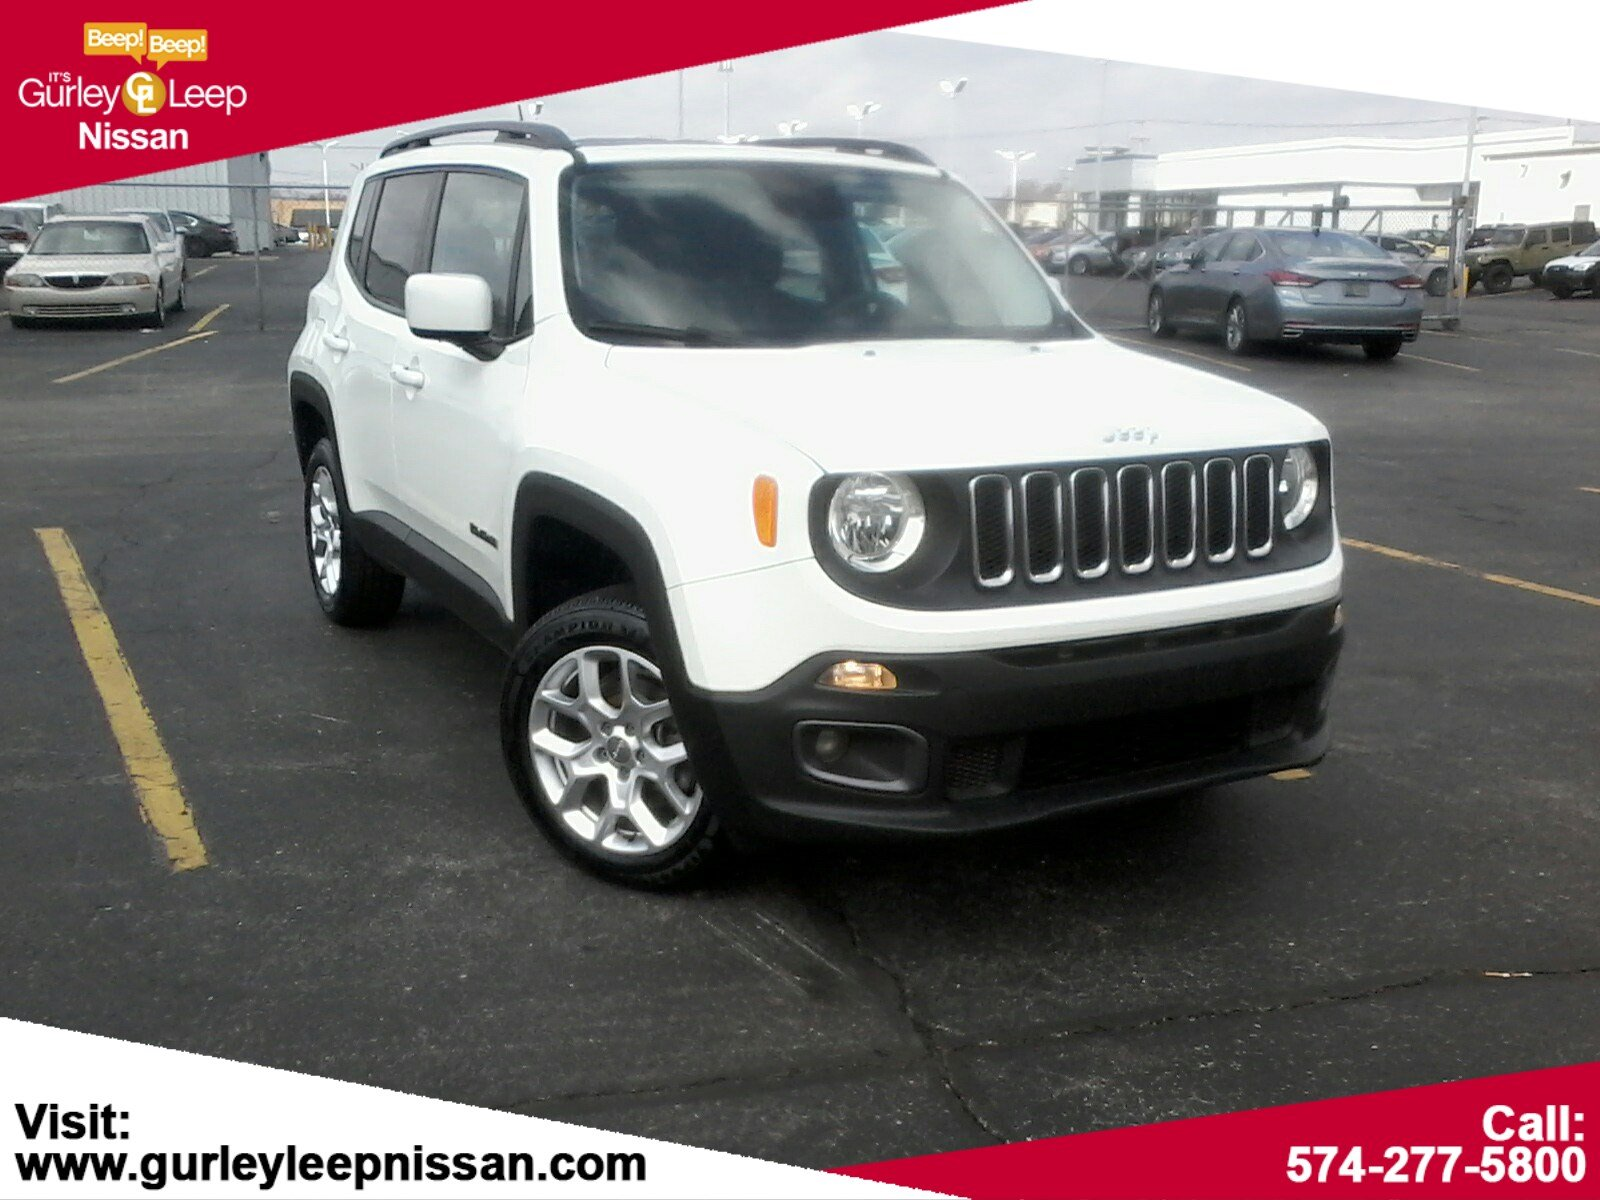 2017 jeep renegade sport 1.4l manual 4wd suv